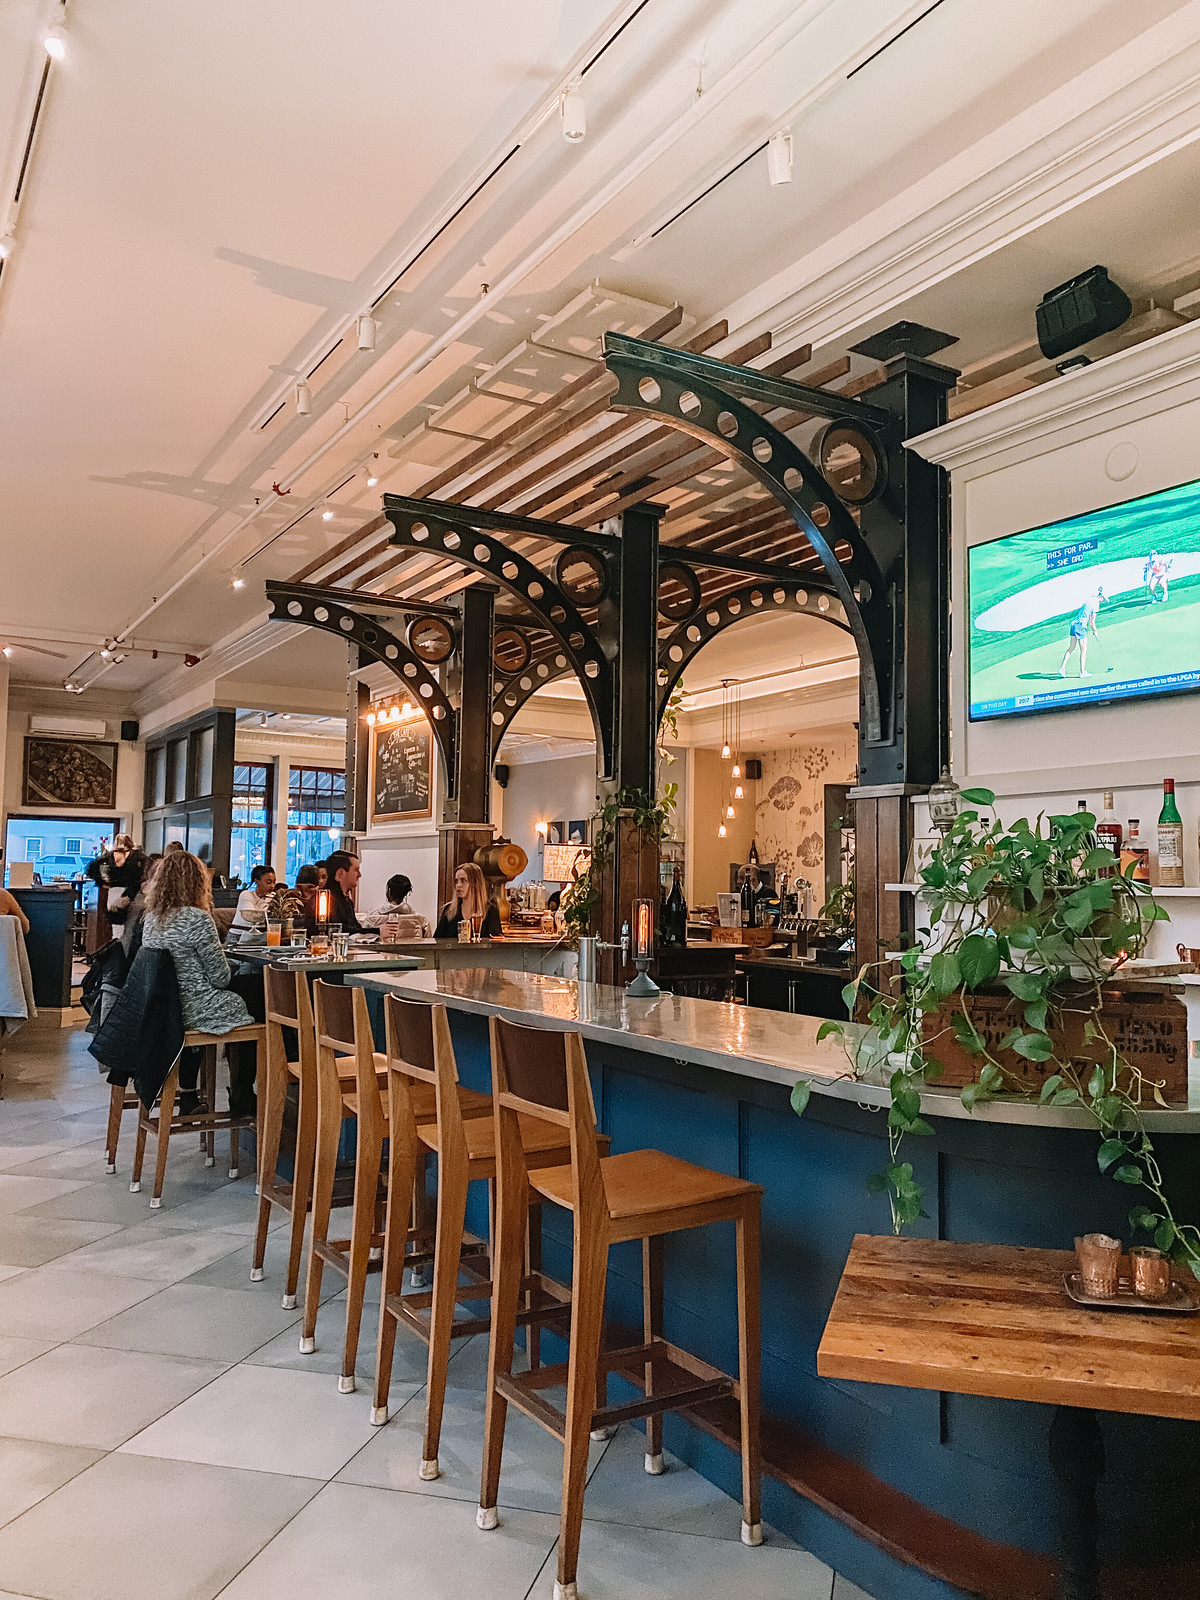 Stoneacre Brasserie | Where to Eat in Newport | 48 Hours in Newport Itinerary | A First Timer's Guide to 2 Days in Newport Rhode Island | What to do in Newport | Newport Travel Guide | Best Things to do in Newport | Best Places to Visit in Newport